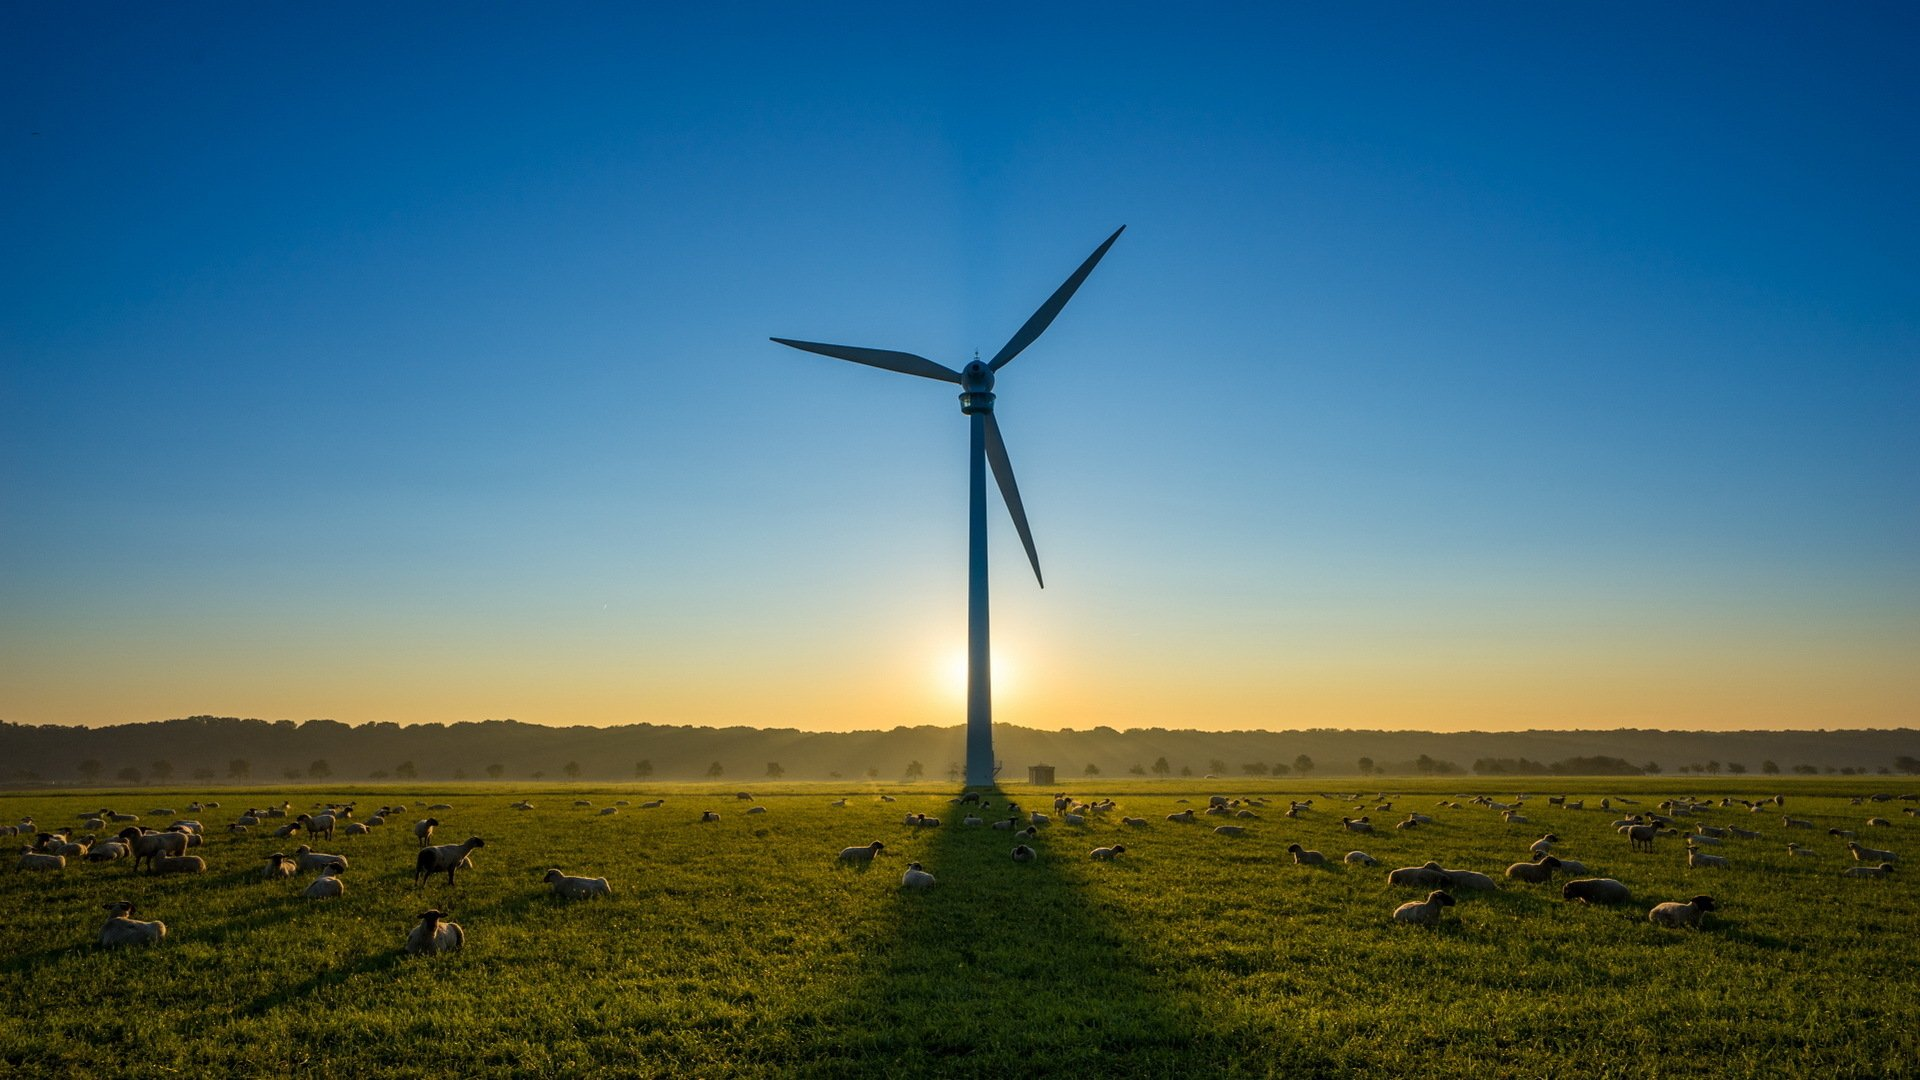 Man Made - Wind Turbine  Sunrise Field Sheep Grass Wallpaper